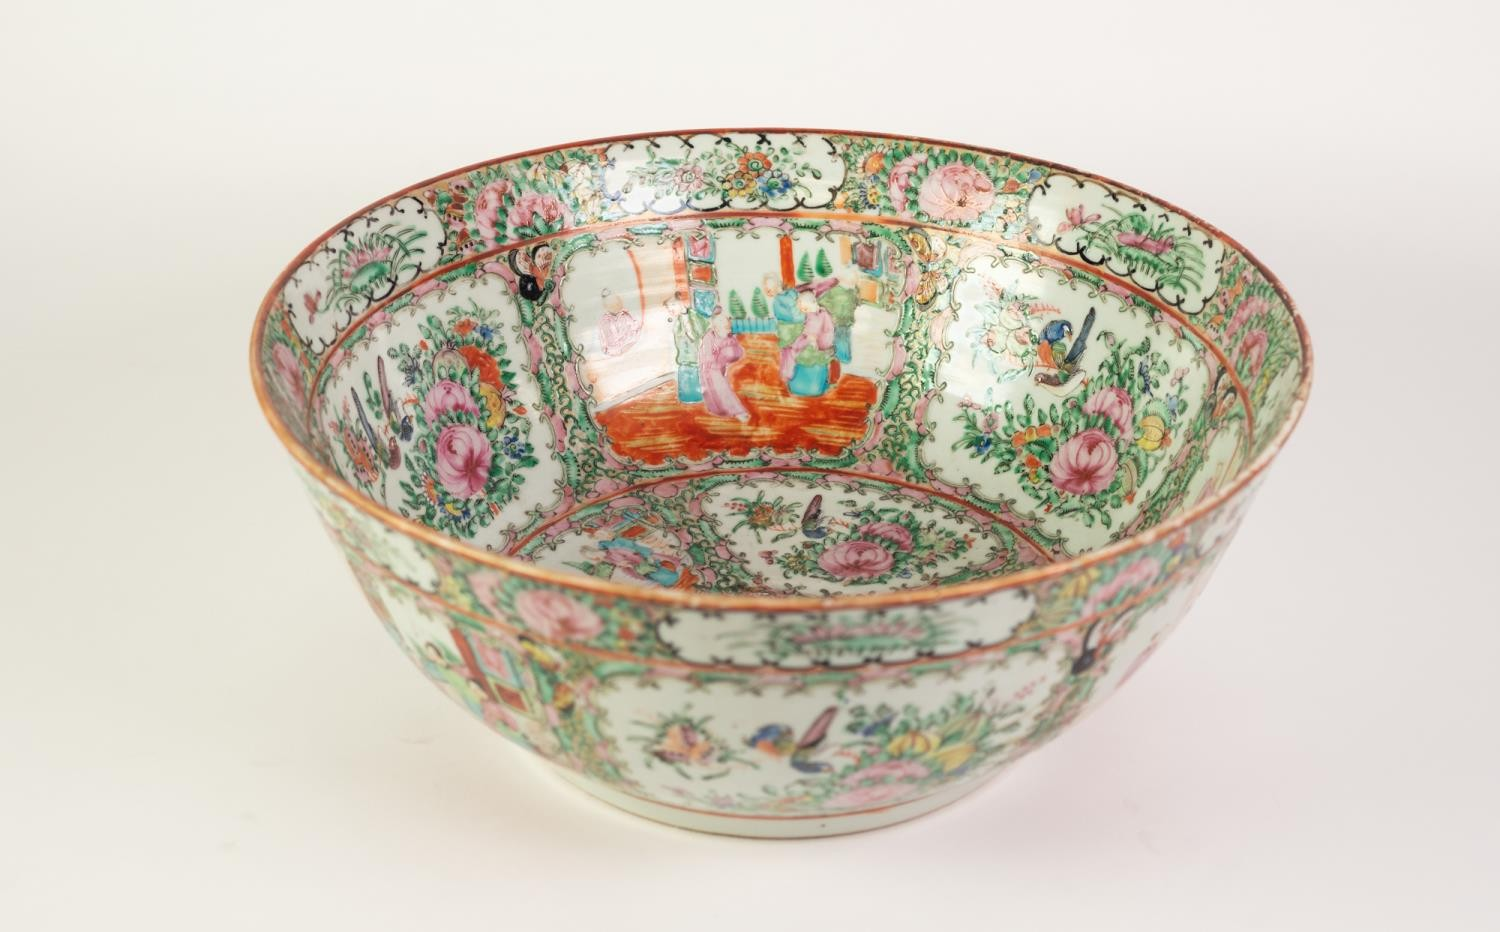 TWENTIETH CENTURY CHINESE FAMILLE ROSE PORCELAIN ROSE BOWL, of slightly flared, footed form, - Image 2 of 4